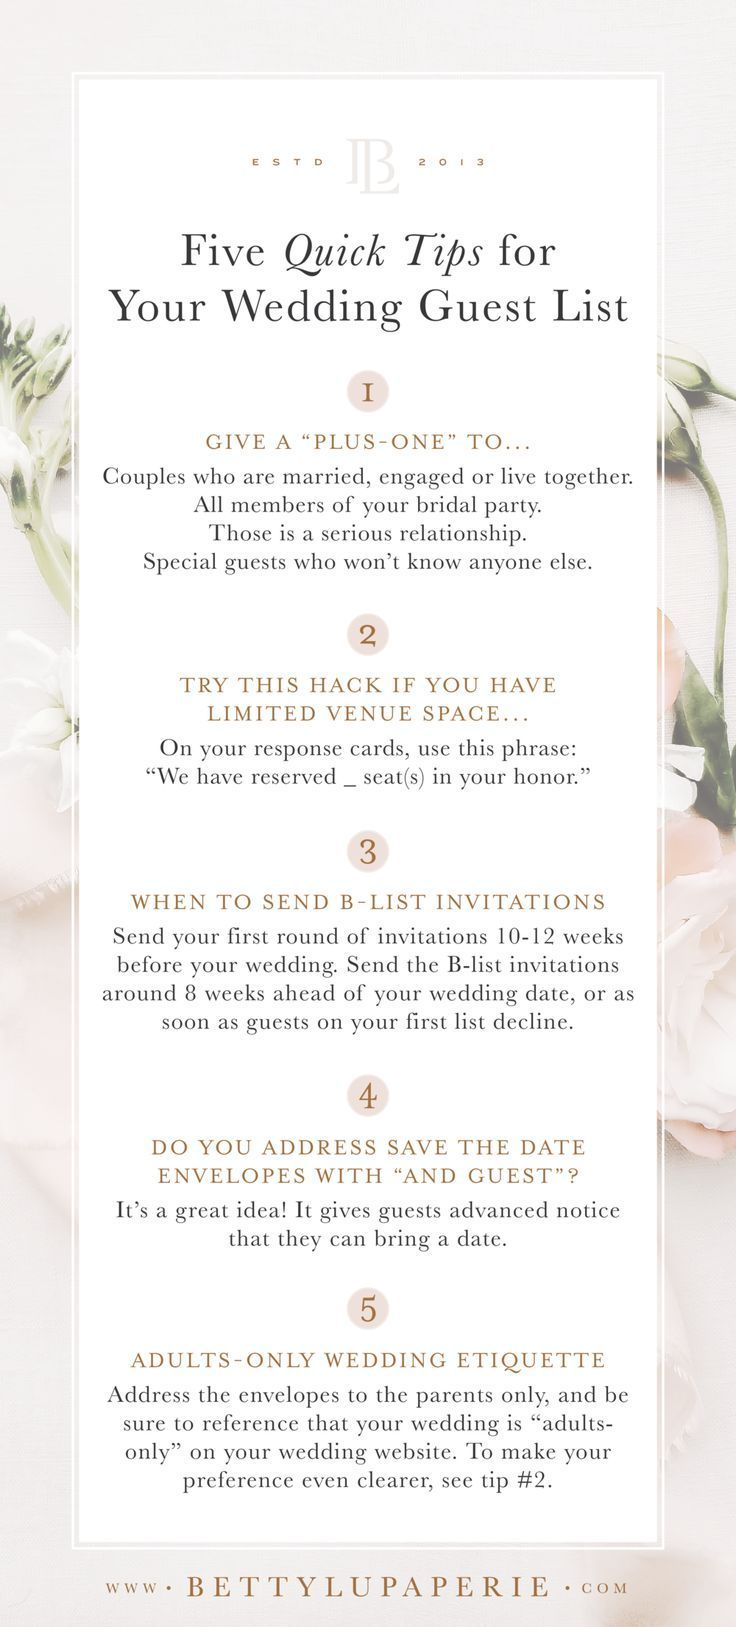 Wedding Guest List Etiquette Floral Wedding Invitations From Betty Lu Paperie In 2020 Wedding Guest List Wedding Guest List Etiquette Floral Wedding Invitations